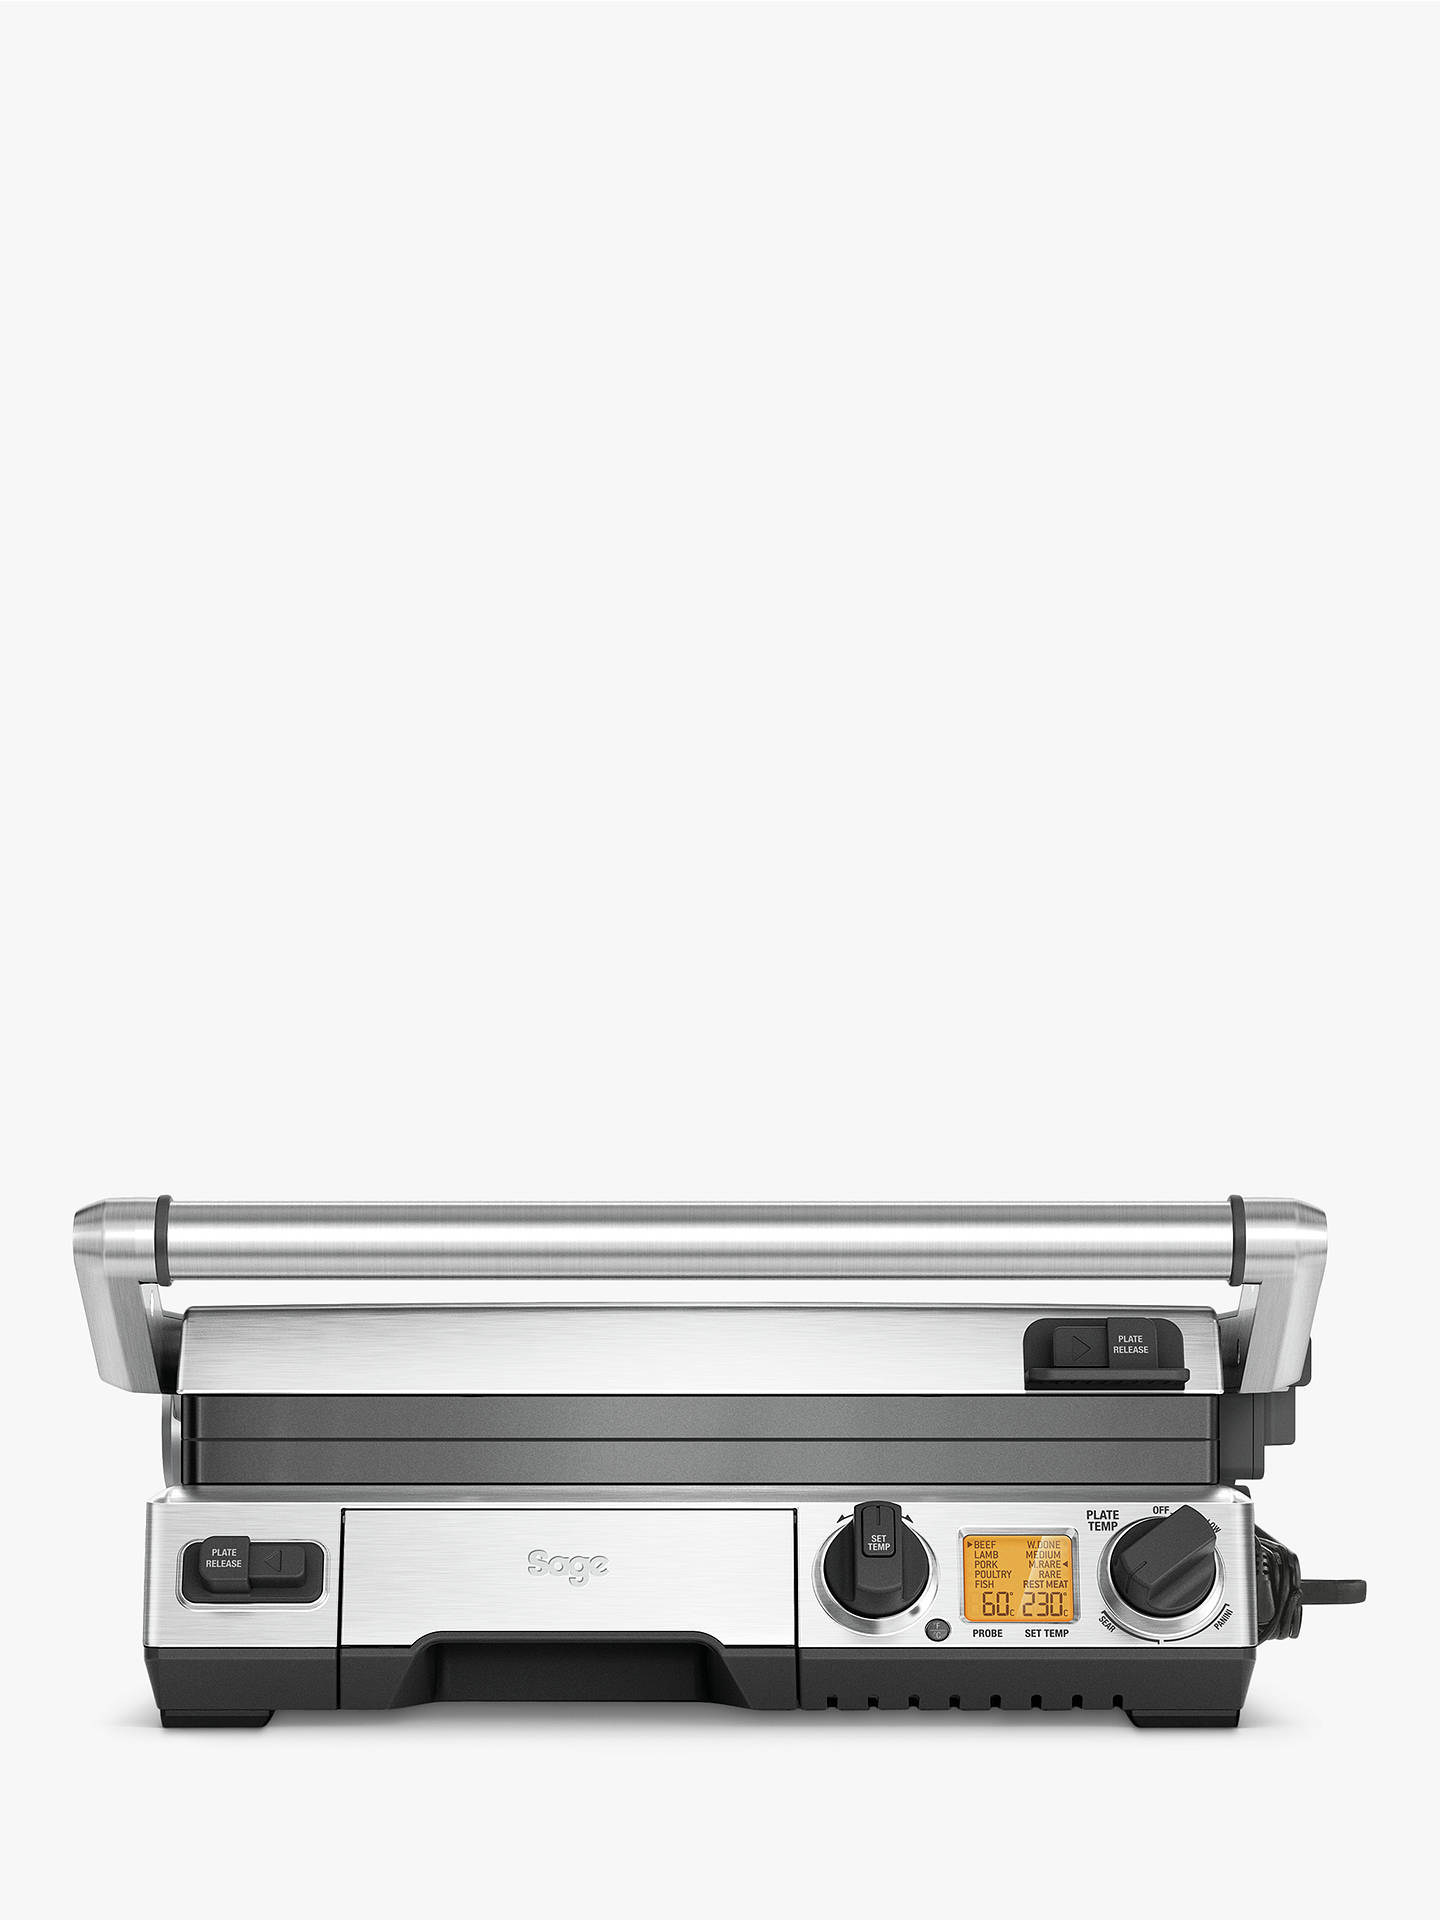 3c84322e3807 Buy Sage the Smart Grill Pro Online at johnlewis.com ...